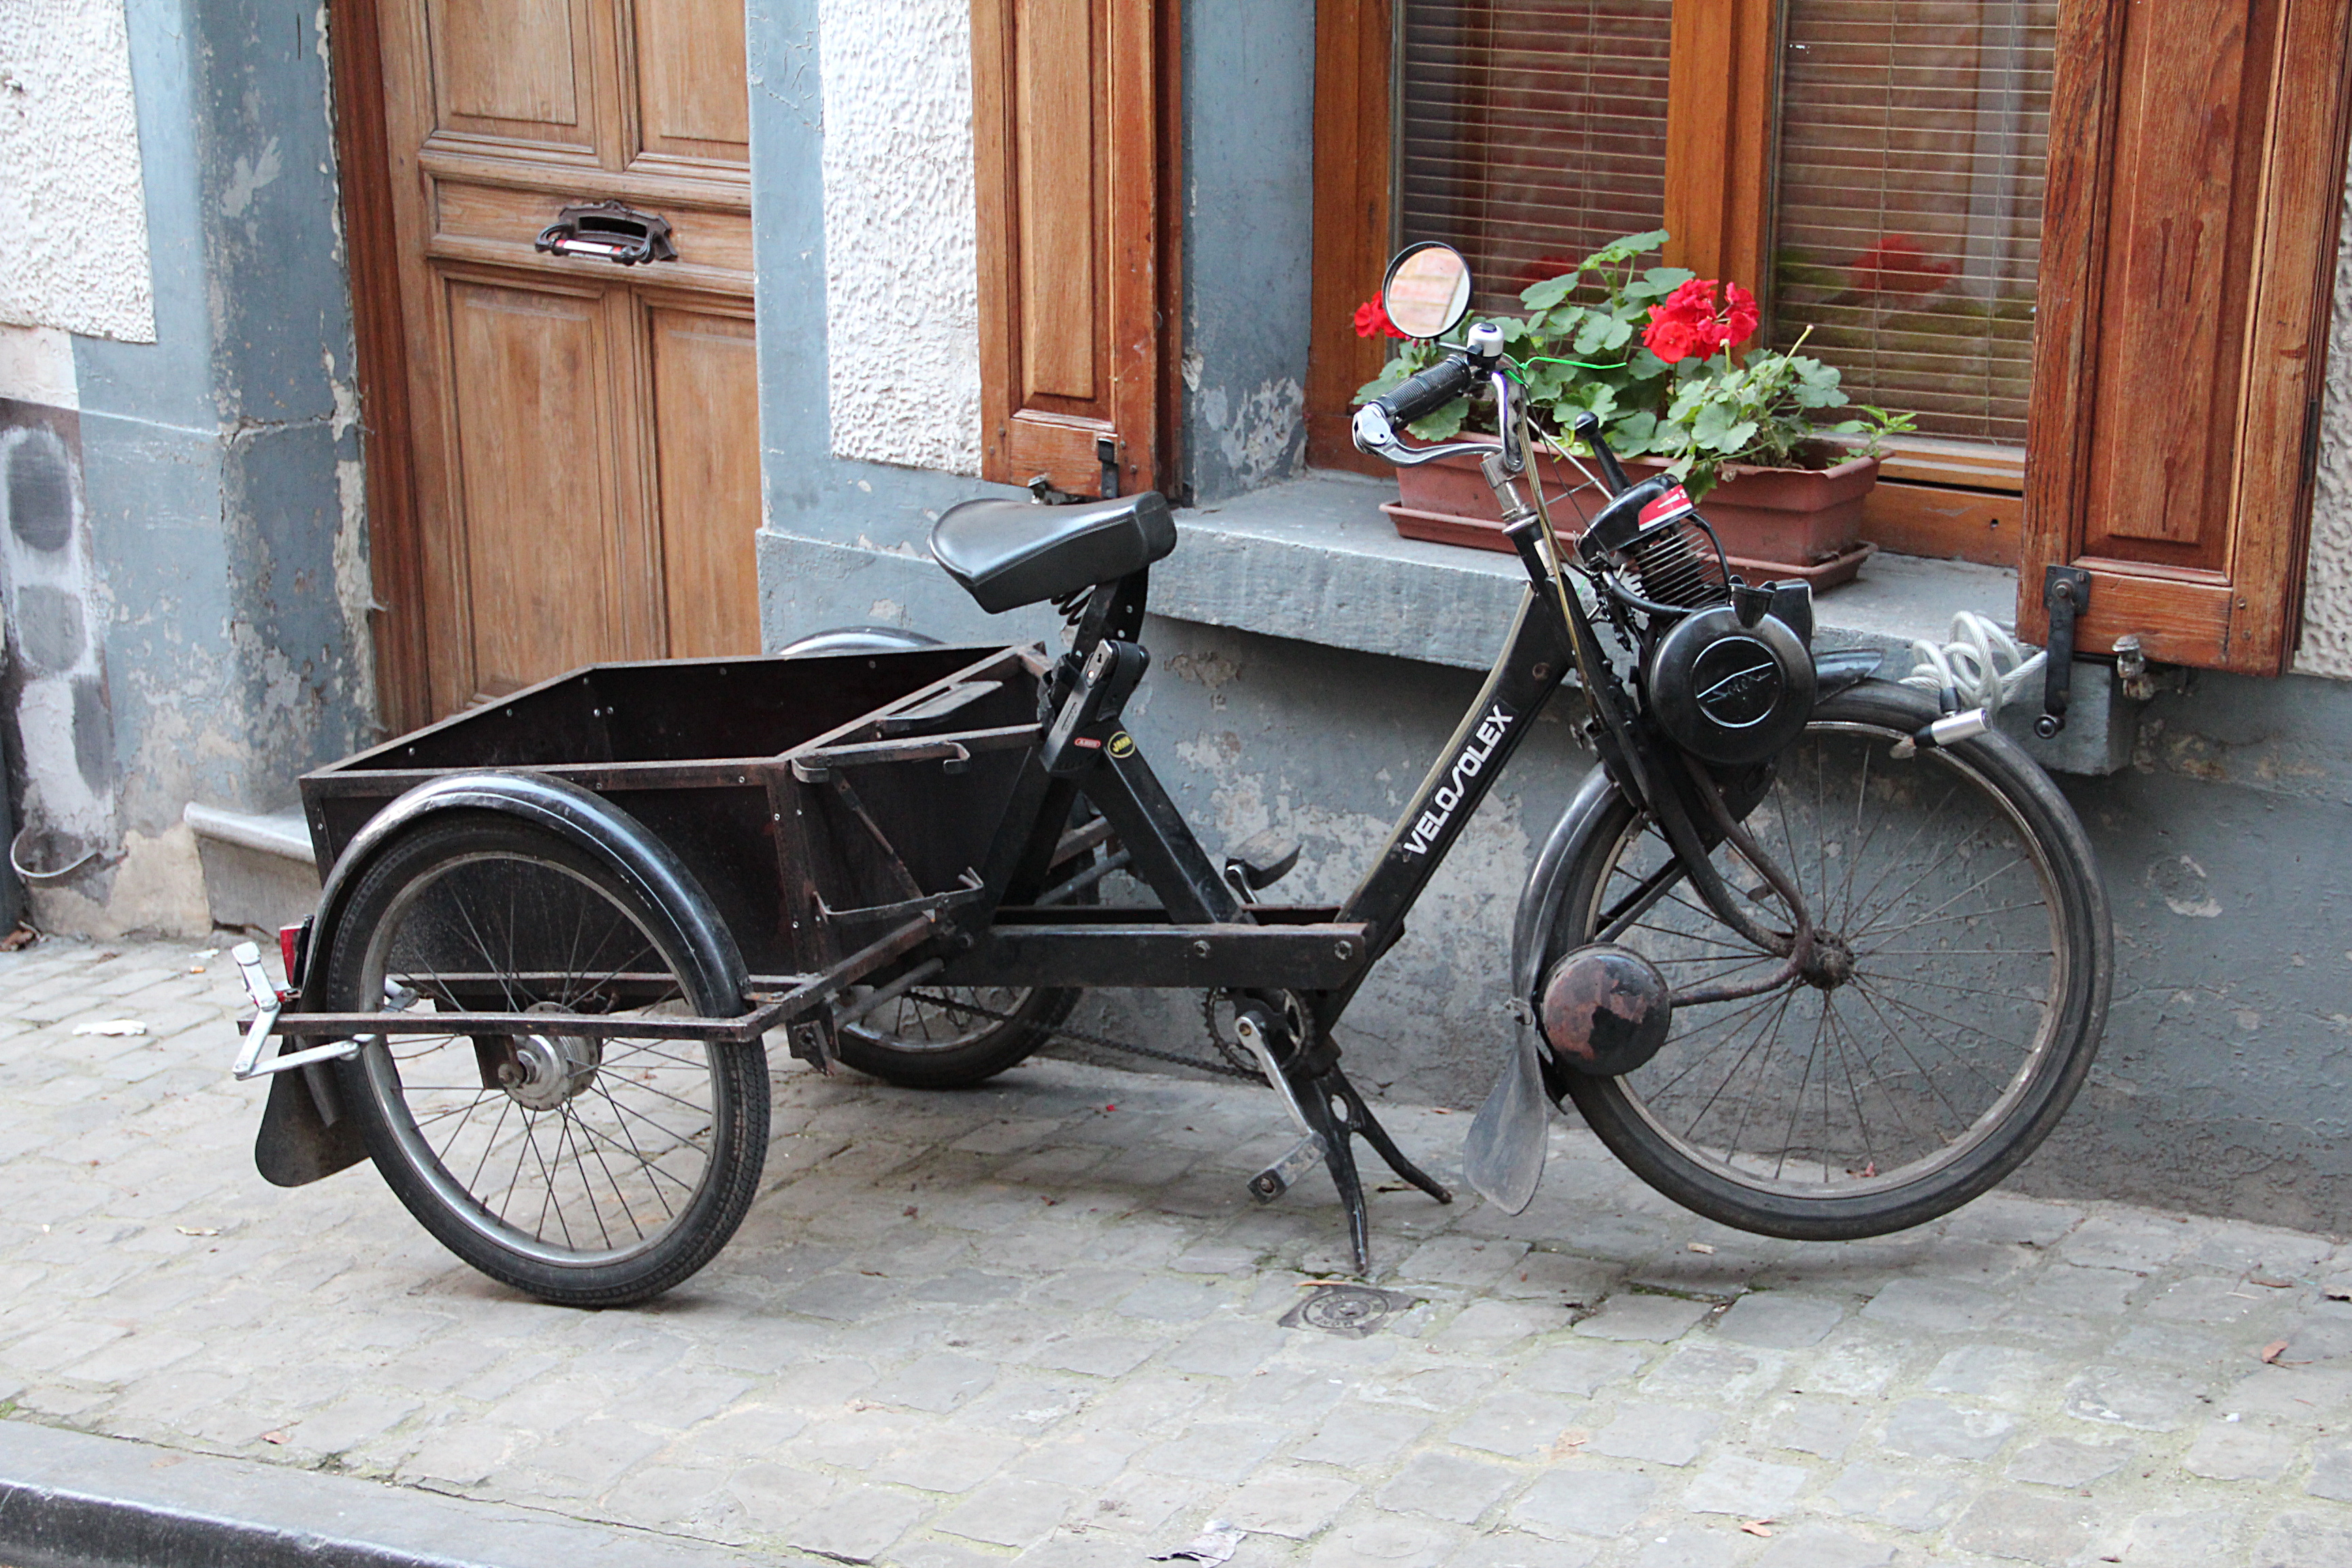 http://upload.wikimedia.org/wikipedia/commons/8/80/Tricycle_V%C3%A9loSolex_-_Mons_161112.JPG